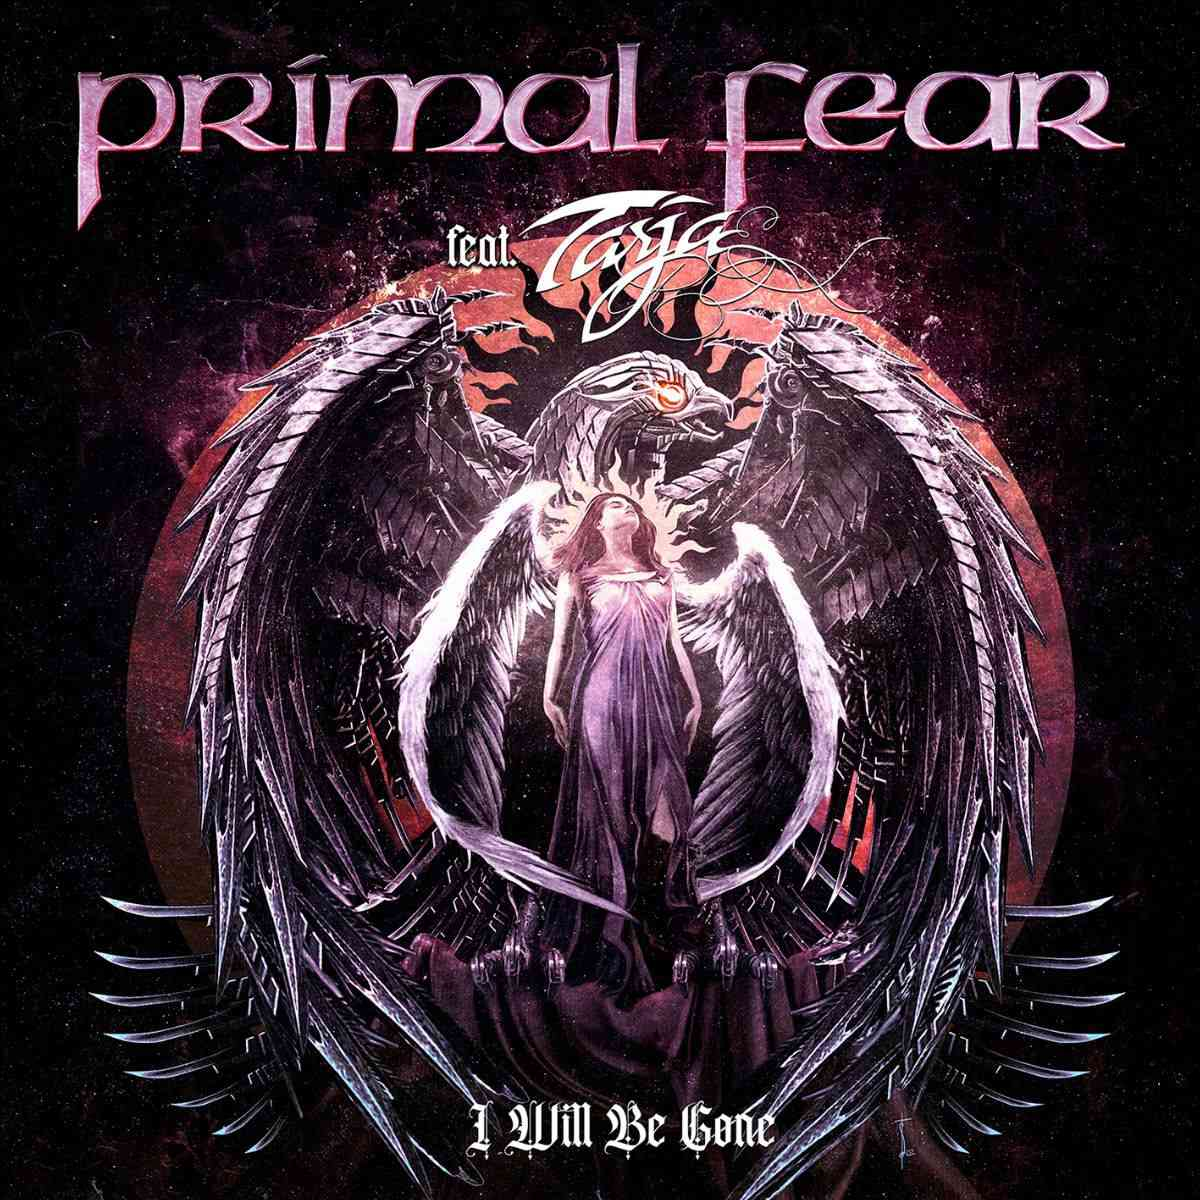 primal fear - i will be gone - album cover